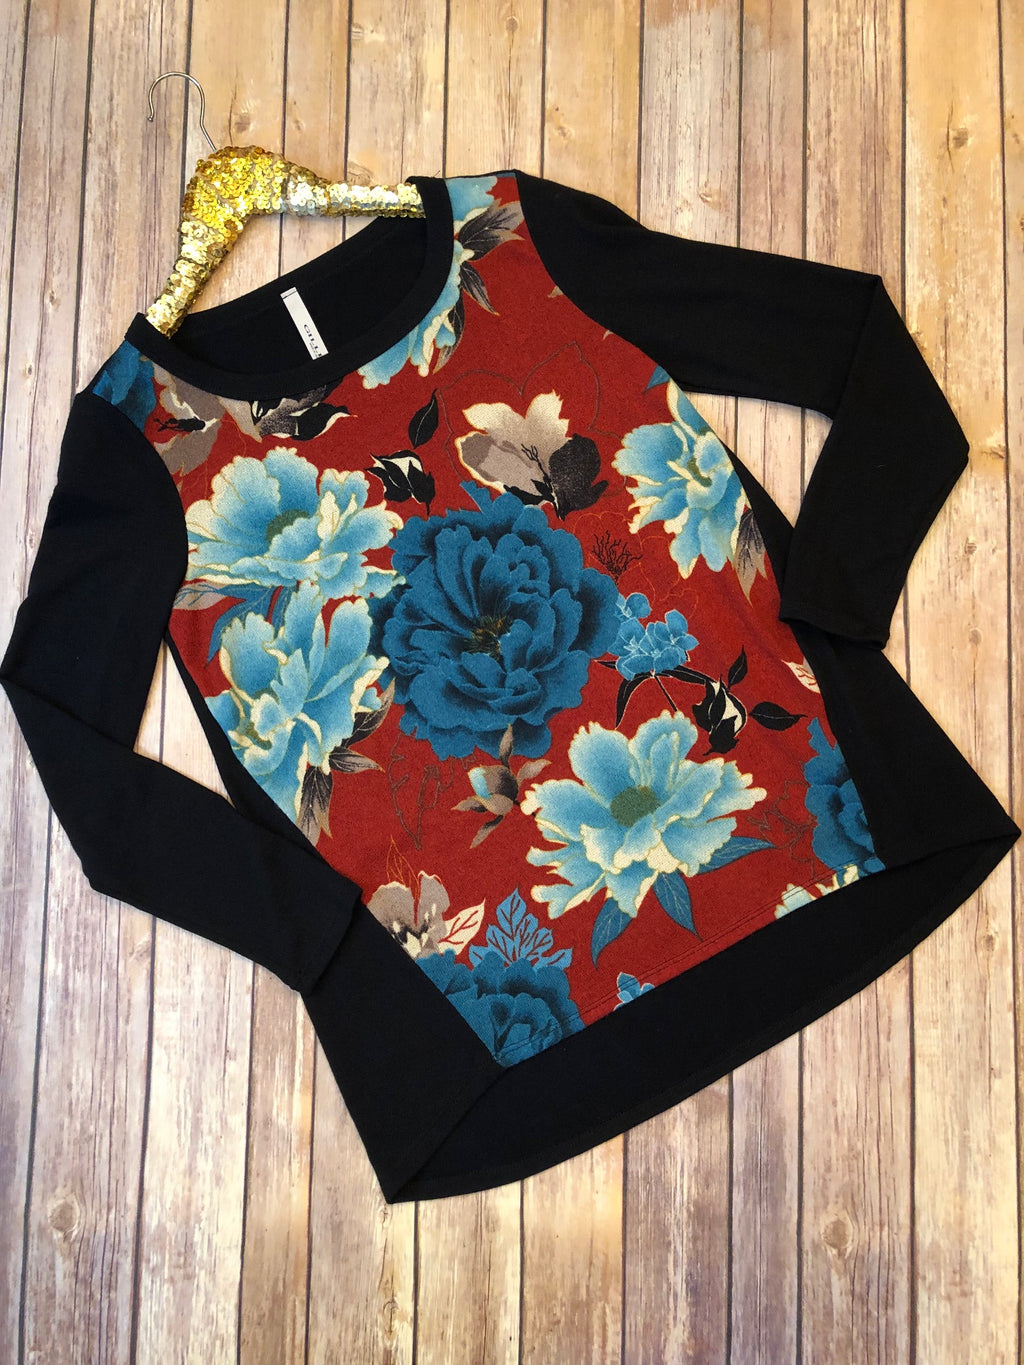 The Floral Sweater - Comfy and Chic Boutique